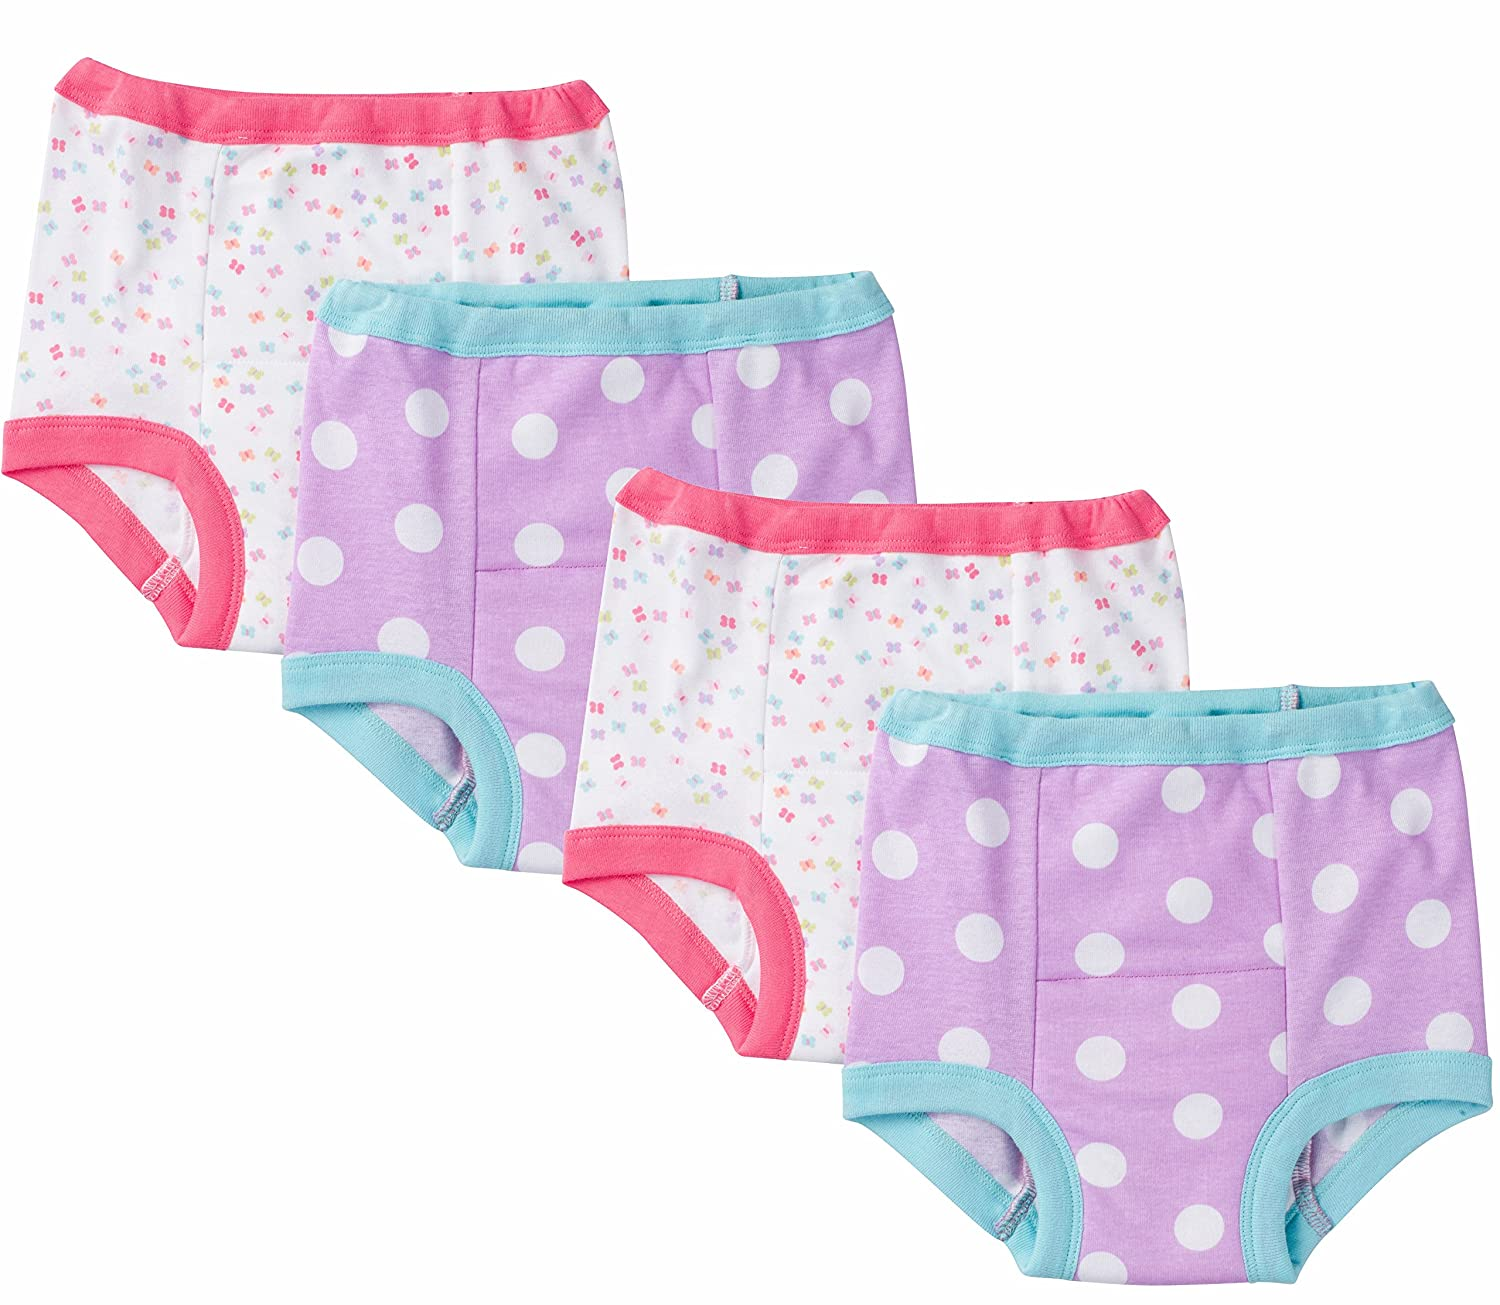 Gerber Little Girls' 4 Pack Training Pant 58416416A G14 02T